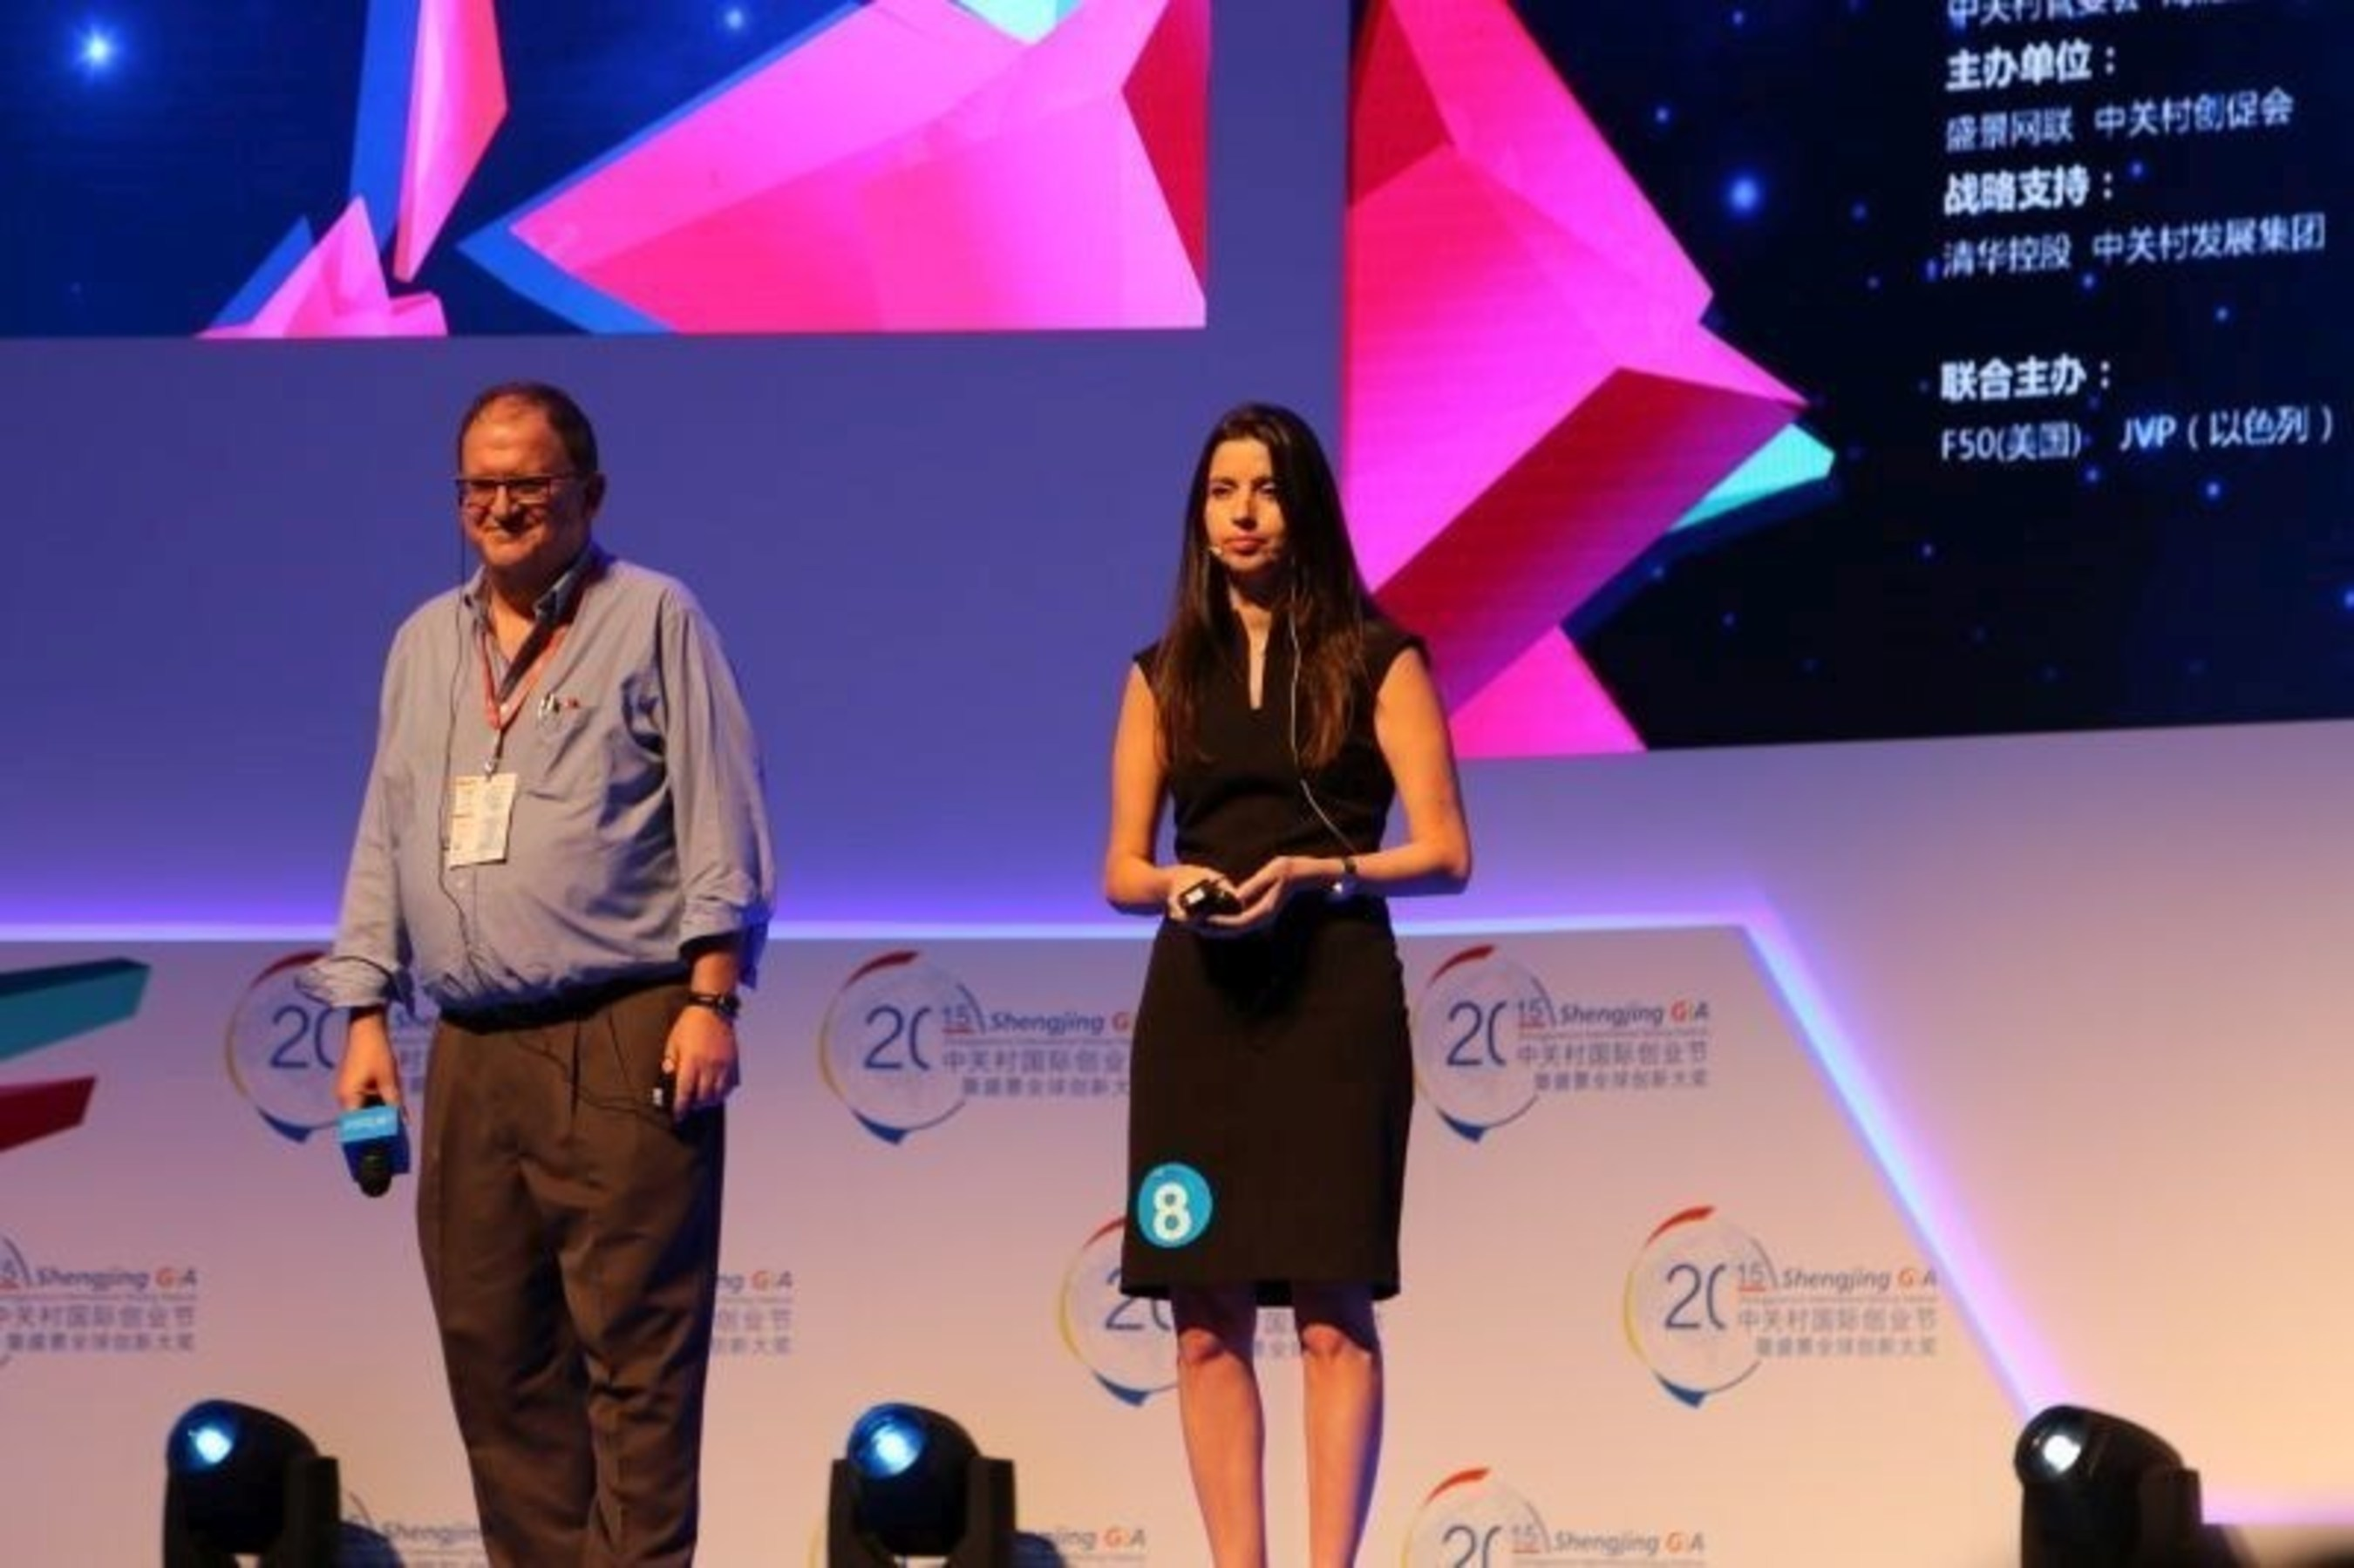 Israeli Startup Takes First Place at Shengjing Global Innovation Awards 2015